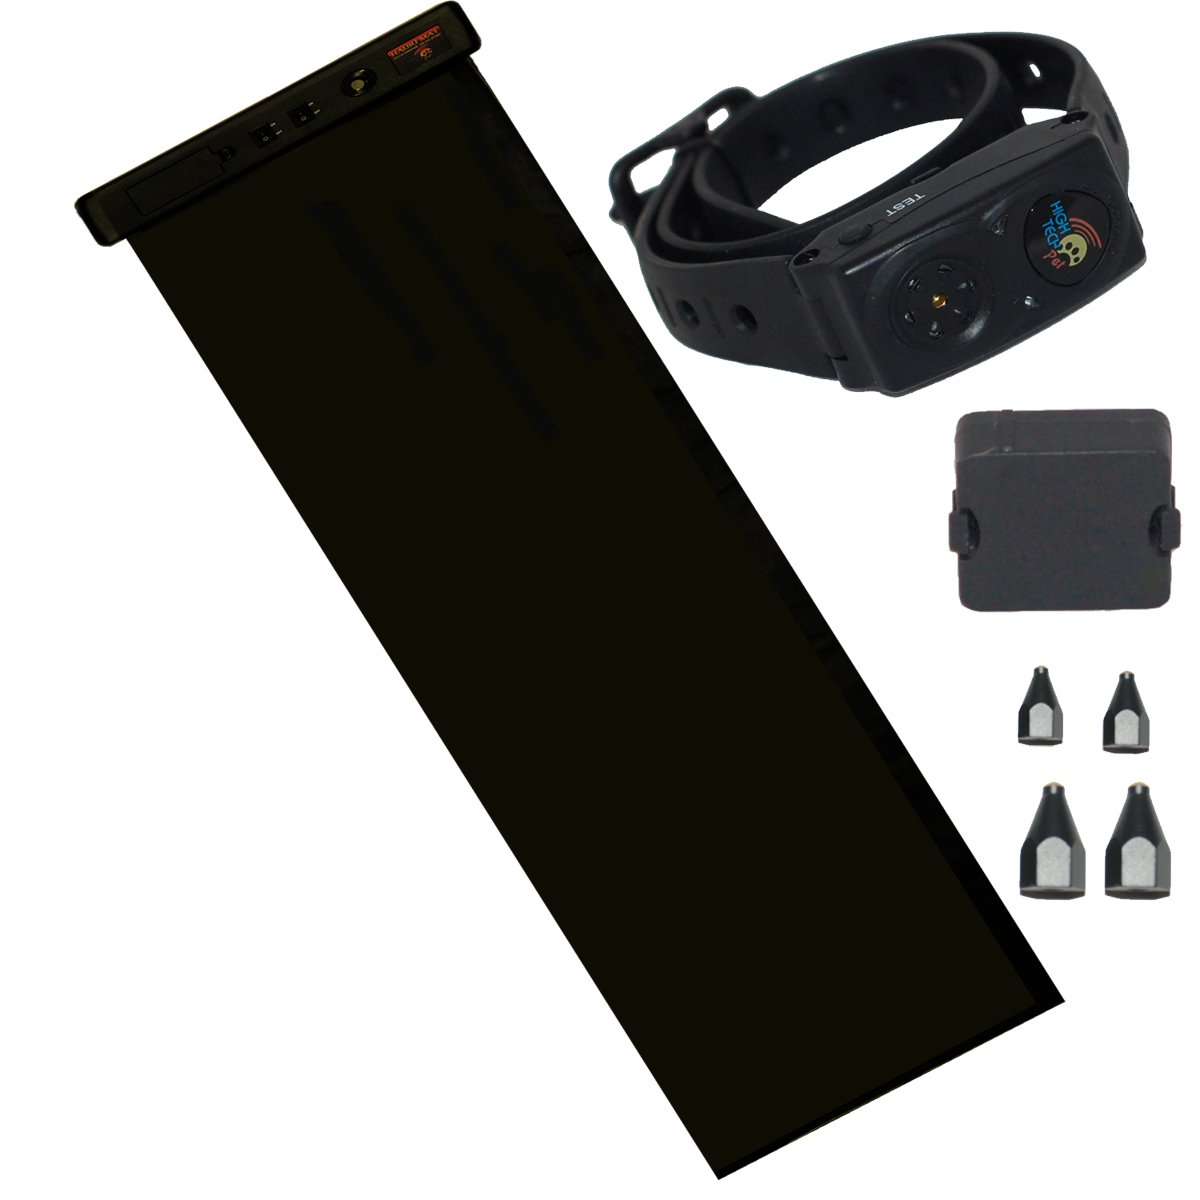 High Tech Pet Radio Mat Pet Deterrent Kit RM-1 by High Tech Pet